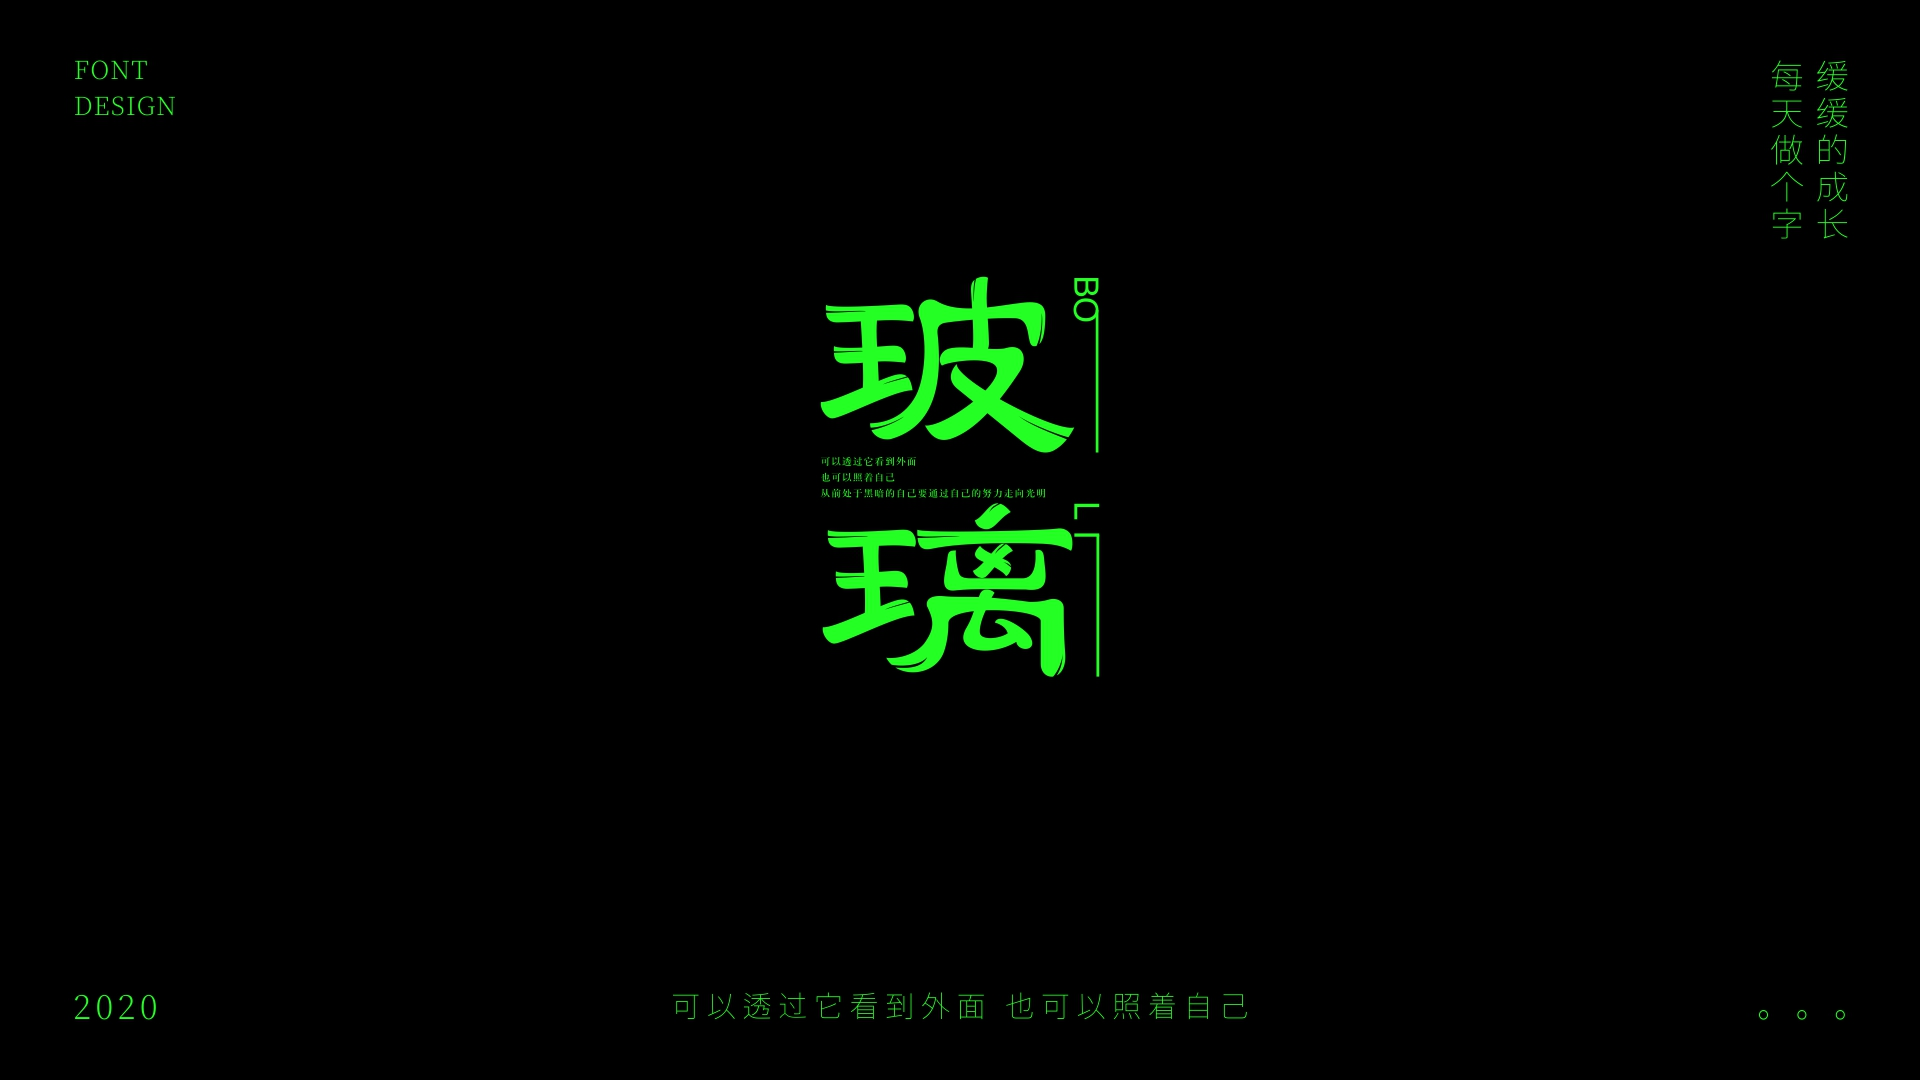 Font design of healing system based on green style